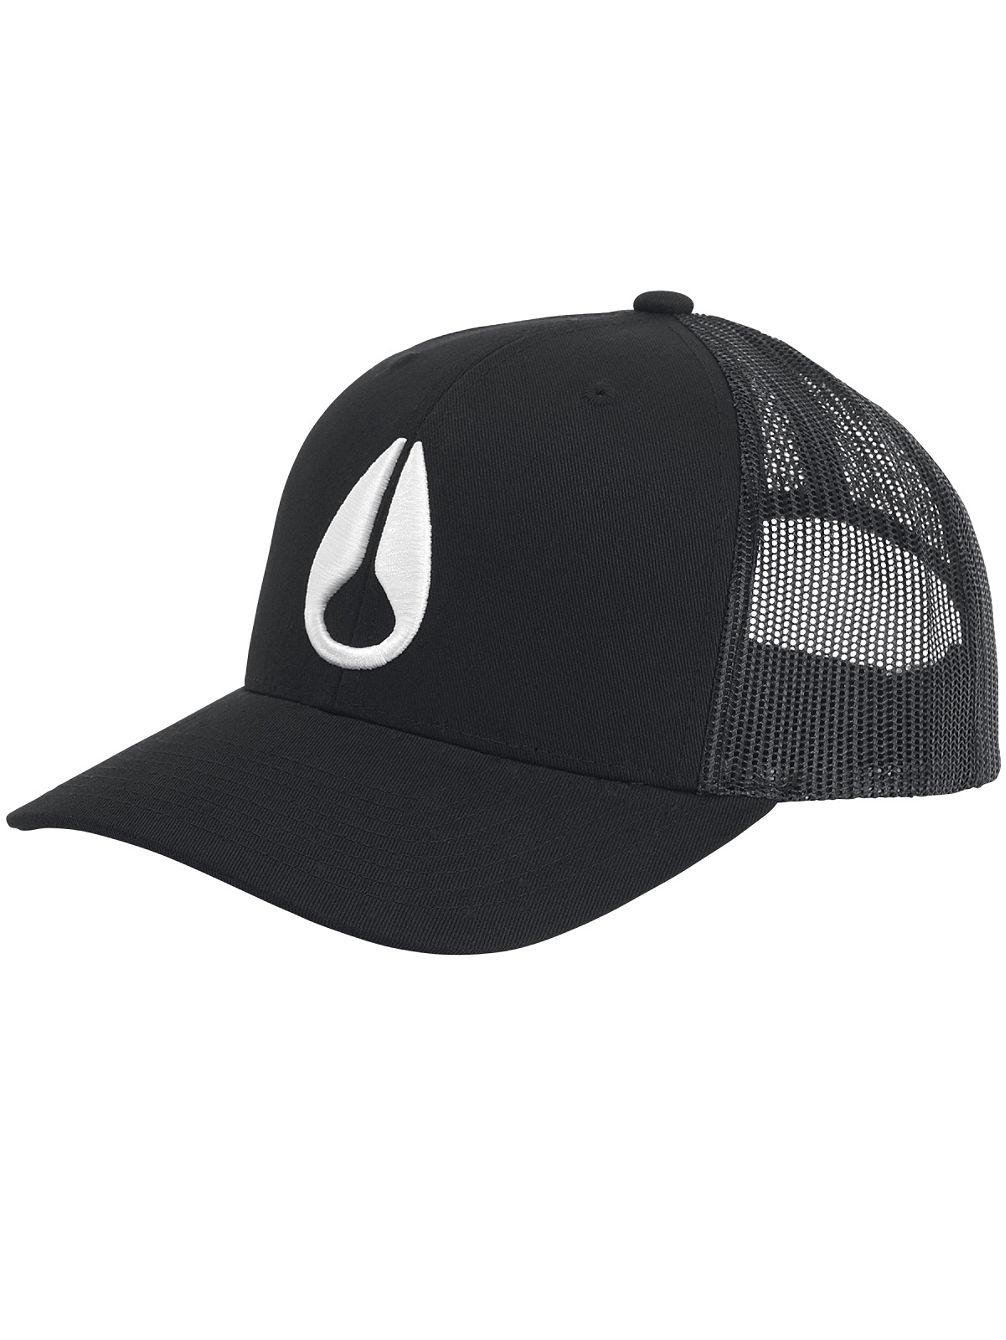 Iconed Trucker Cap